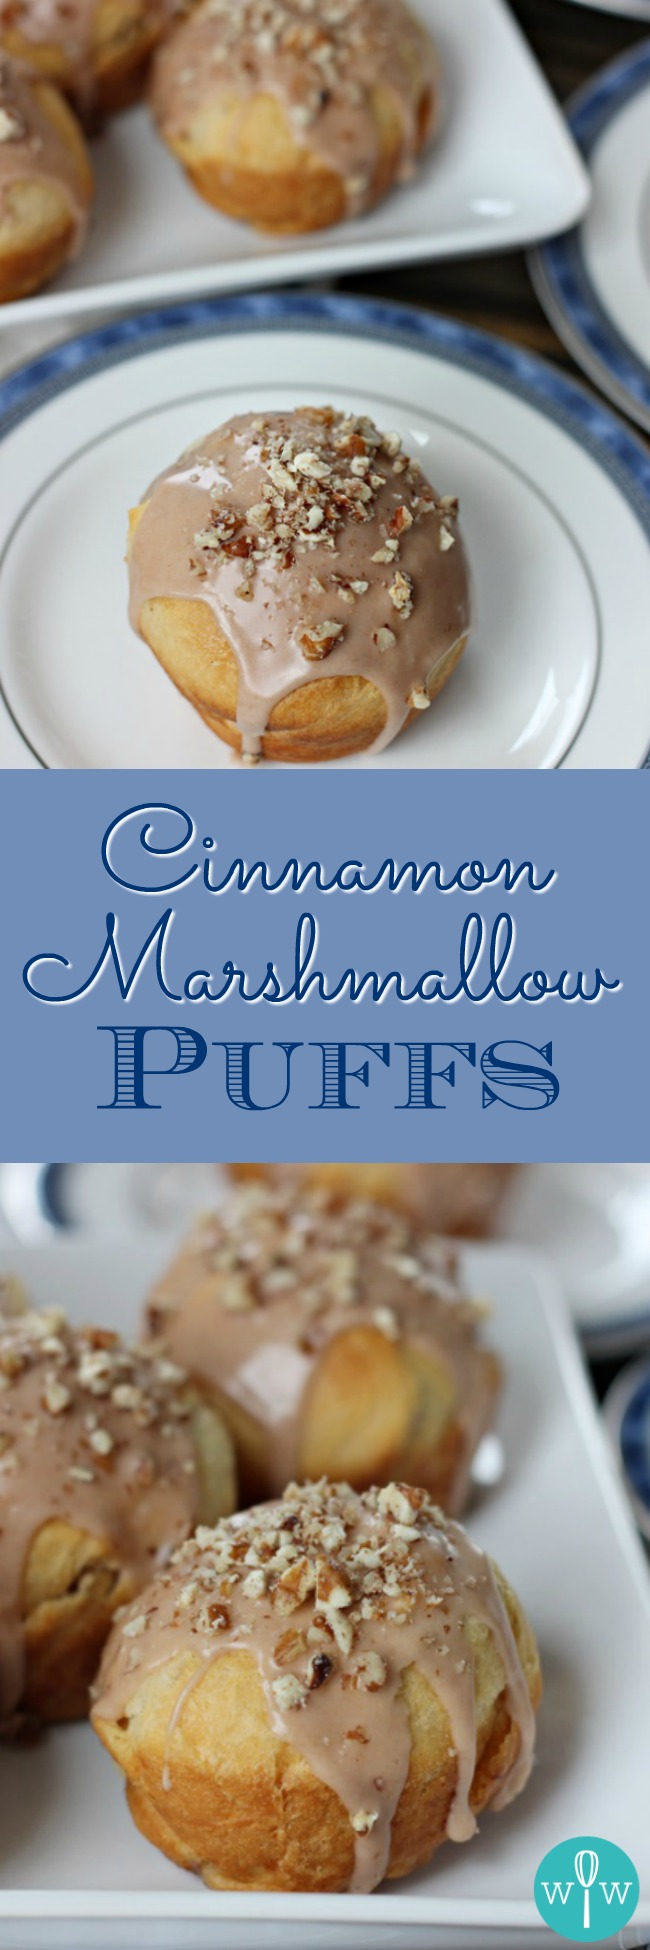 Cinnamon Marshmallow Puffs – Crescent rolls combine with marshmallows, cinnamon, and sugar to create a super easy twist on the classic cinnamon roll. | www.worthwhisking.com